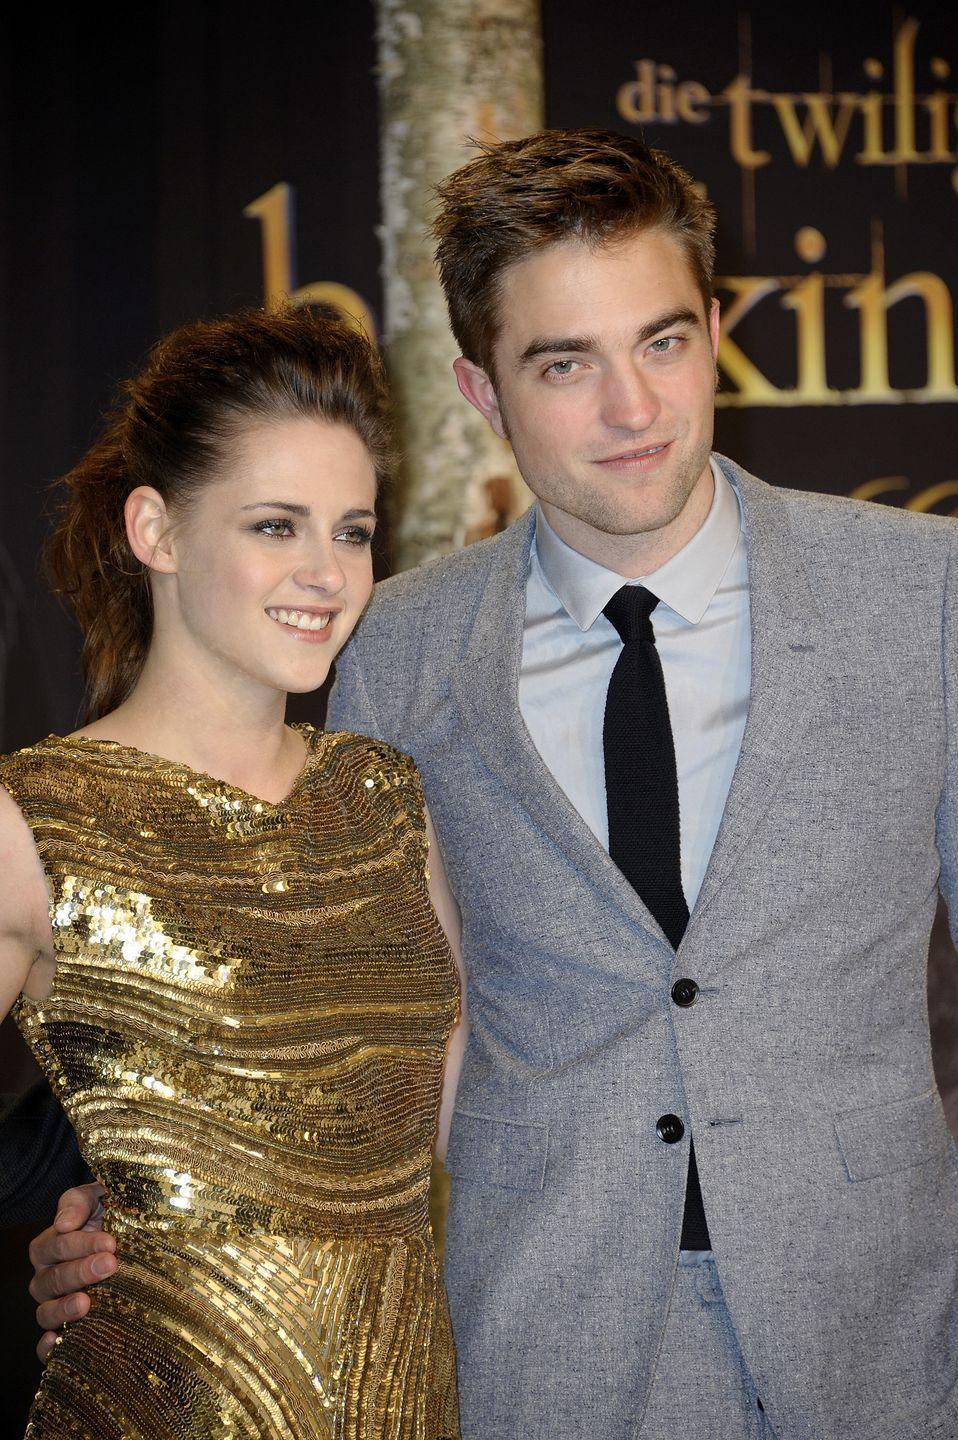 """<p>The on-screen, off-screen couple started dating in 2009 while filming the <em>Twilight </em>movies. After several years of dating and a short-break up in 2012, they broke up for good <a href=""""http://www.huffingtonpost.com/entry/kristen-stewart-robert-pattinson-breakup-painful_us_55f814a0e4b0c2077efbf6de"""" rel=""""nofollow noopener"""" target=""""_blank"""" data-ylk=""""slk:in 2013"""" class=""""link rapid-noclick-resp"""">in 2013</a>, just before having to do <a href=""""http://www.mirror.co.uk/3am/celebrity-news/robert-pattinson-kristen-stewart-timeline-2085359"""" rel=""""nofollow noopener"""" target=""""_blank"""" data-ylk=""""slk:press appearances"""" class=""""link rapid-noclick-resp"""">press appearances</a> together leading up the premiere of the last <em>Twilight</em> installment, <em>Breaking Dawn Part 2.</em></p>"""